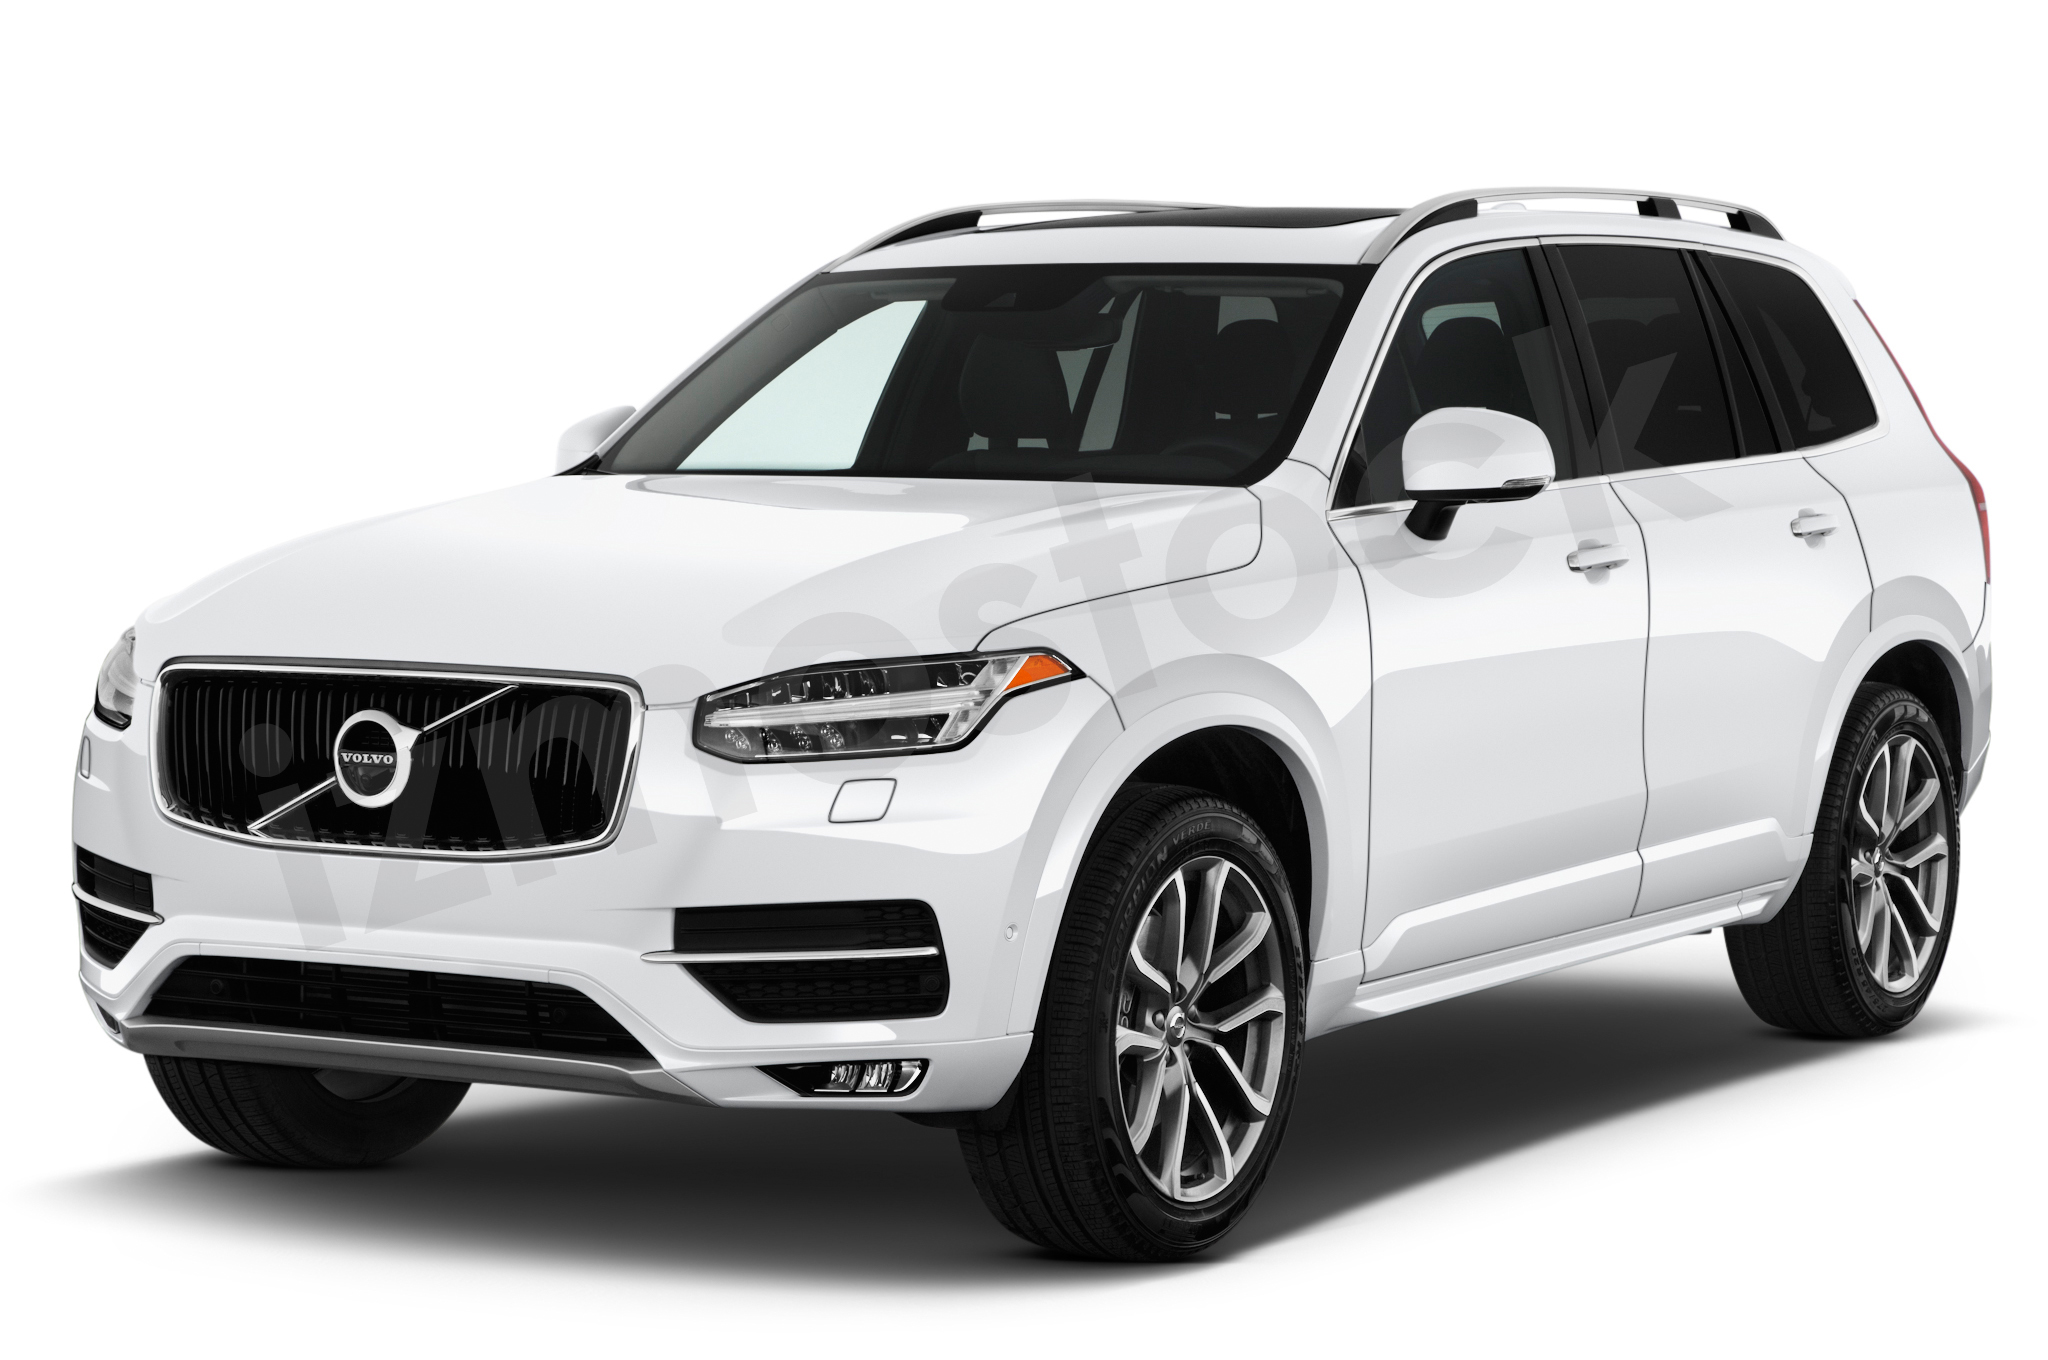 image prices suv in malaysia exterior facelift volvo reviews